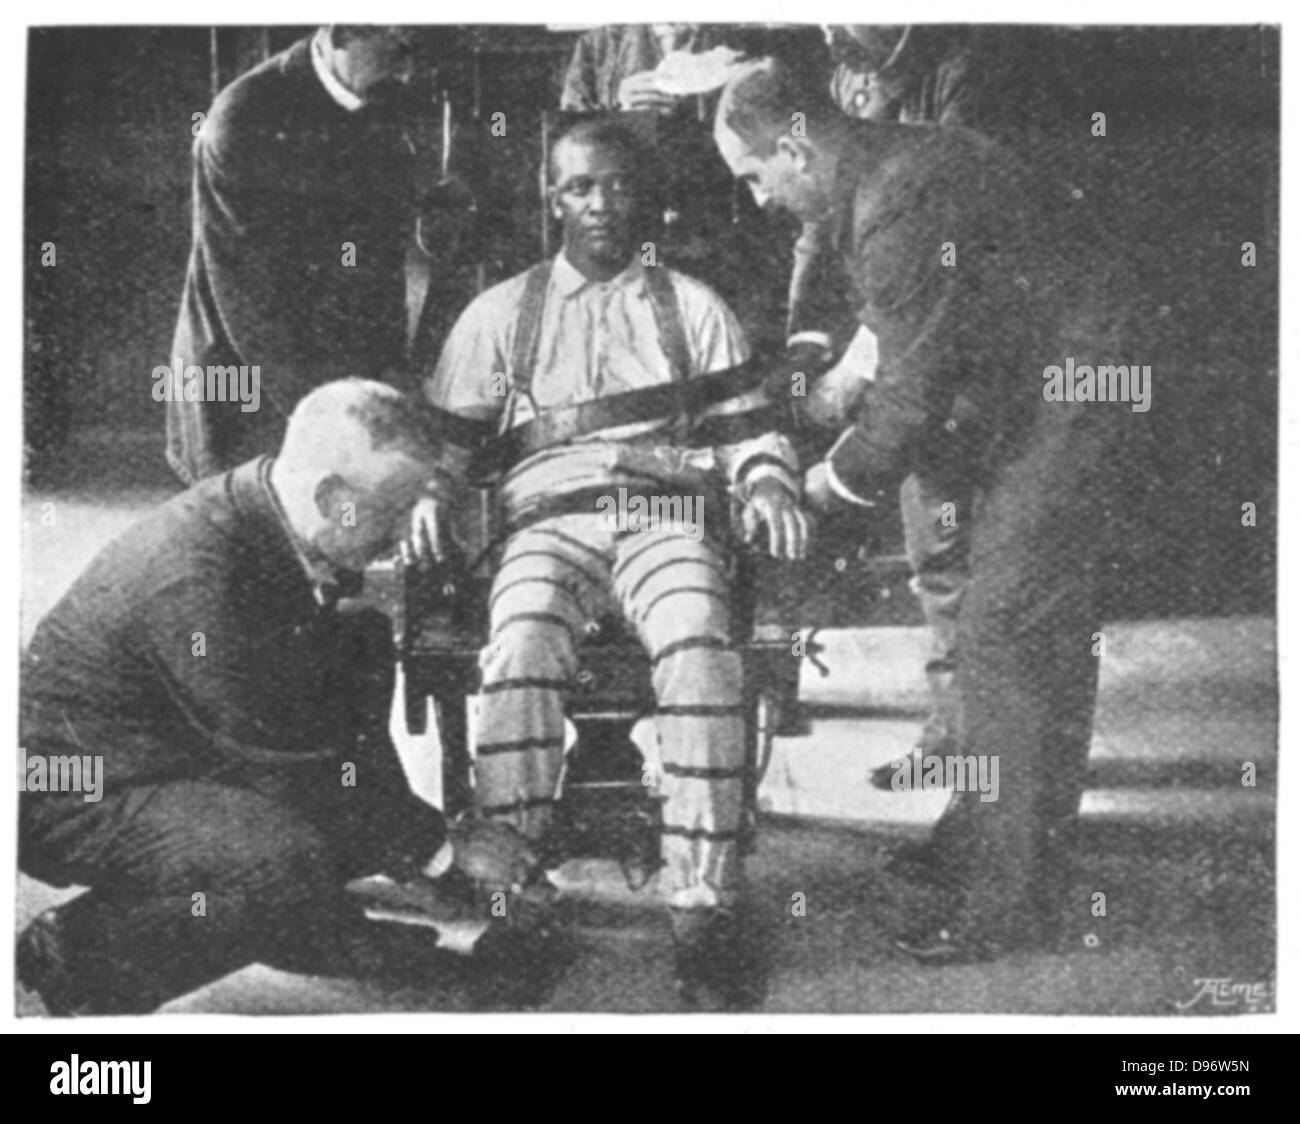 Real electric chair execution photos - Execution By Electric Chair Sing Sing Prison New York Usa Strapping The